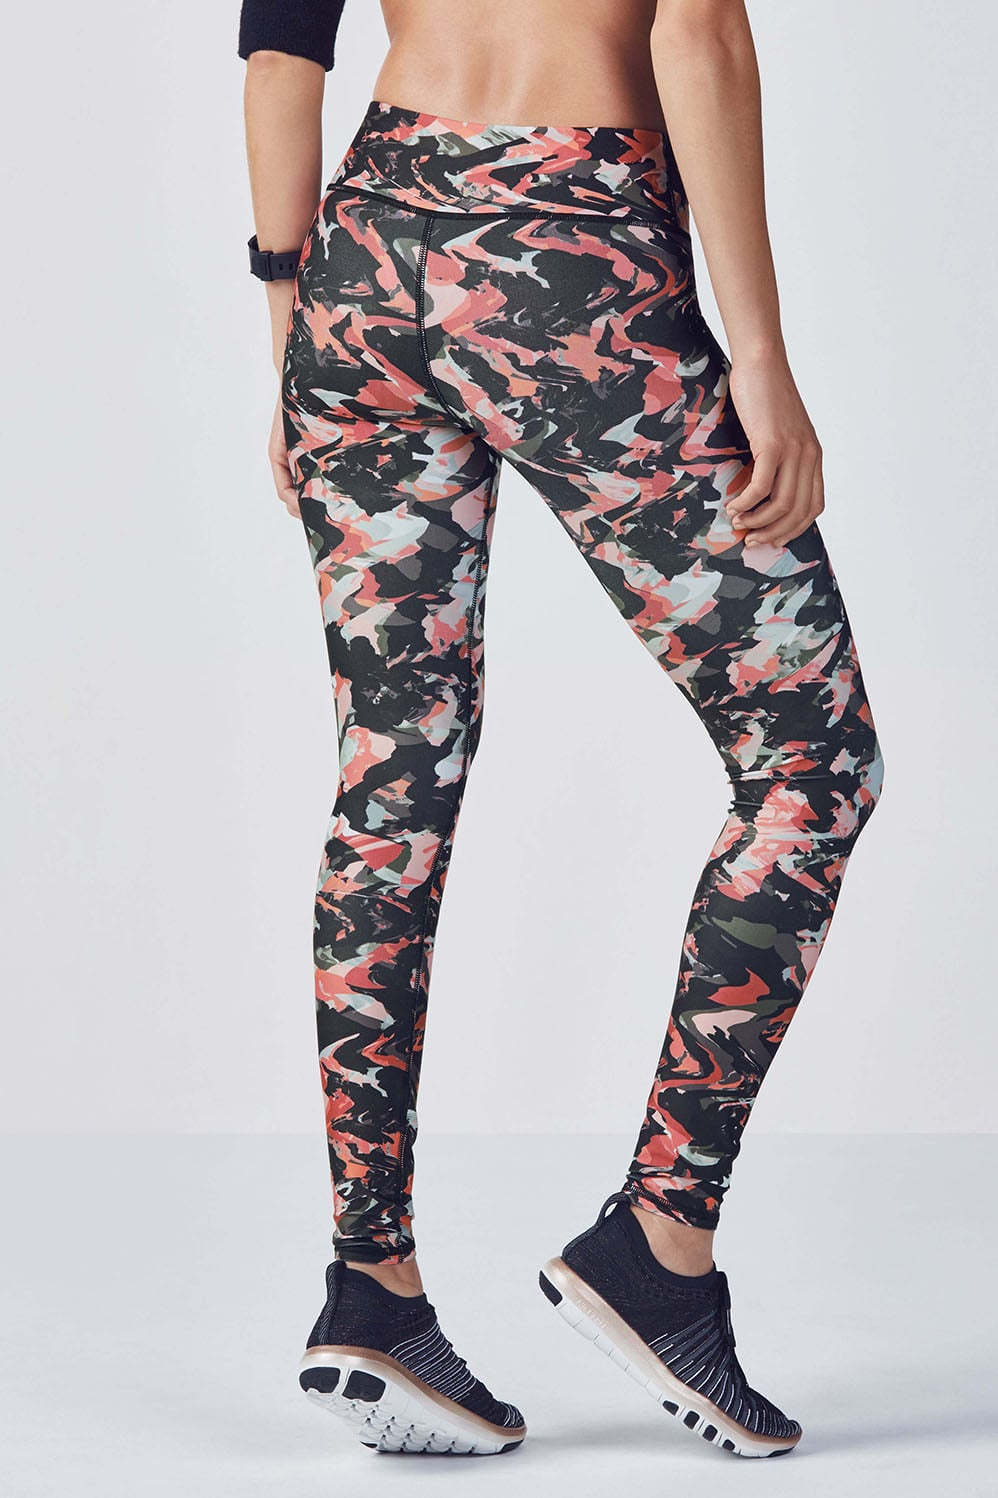 57c912cf4235b Of course, we couldn't write a legging round-up without at least mentioning  the gym! The Salar — Fabletics' all-time bestseller — is built with ...